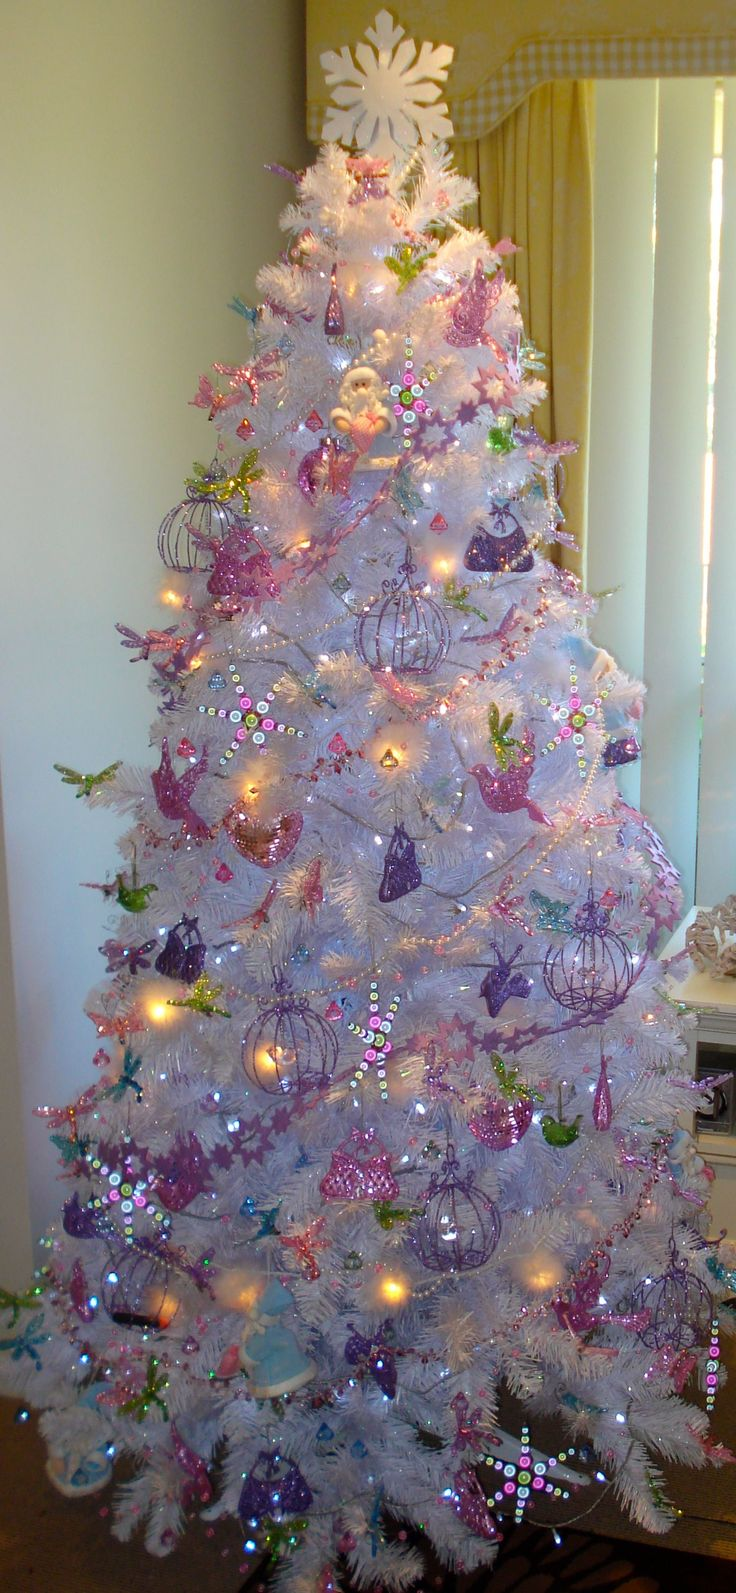 purple christmas tree decorations. See More. White Christmas Tree with  Apple Green, Lavender & Pink.